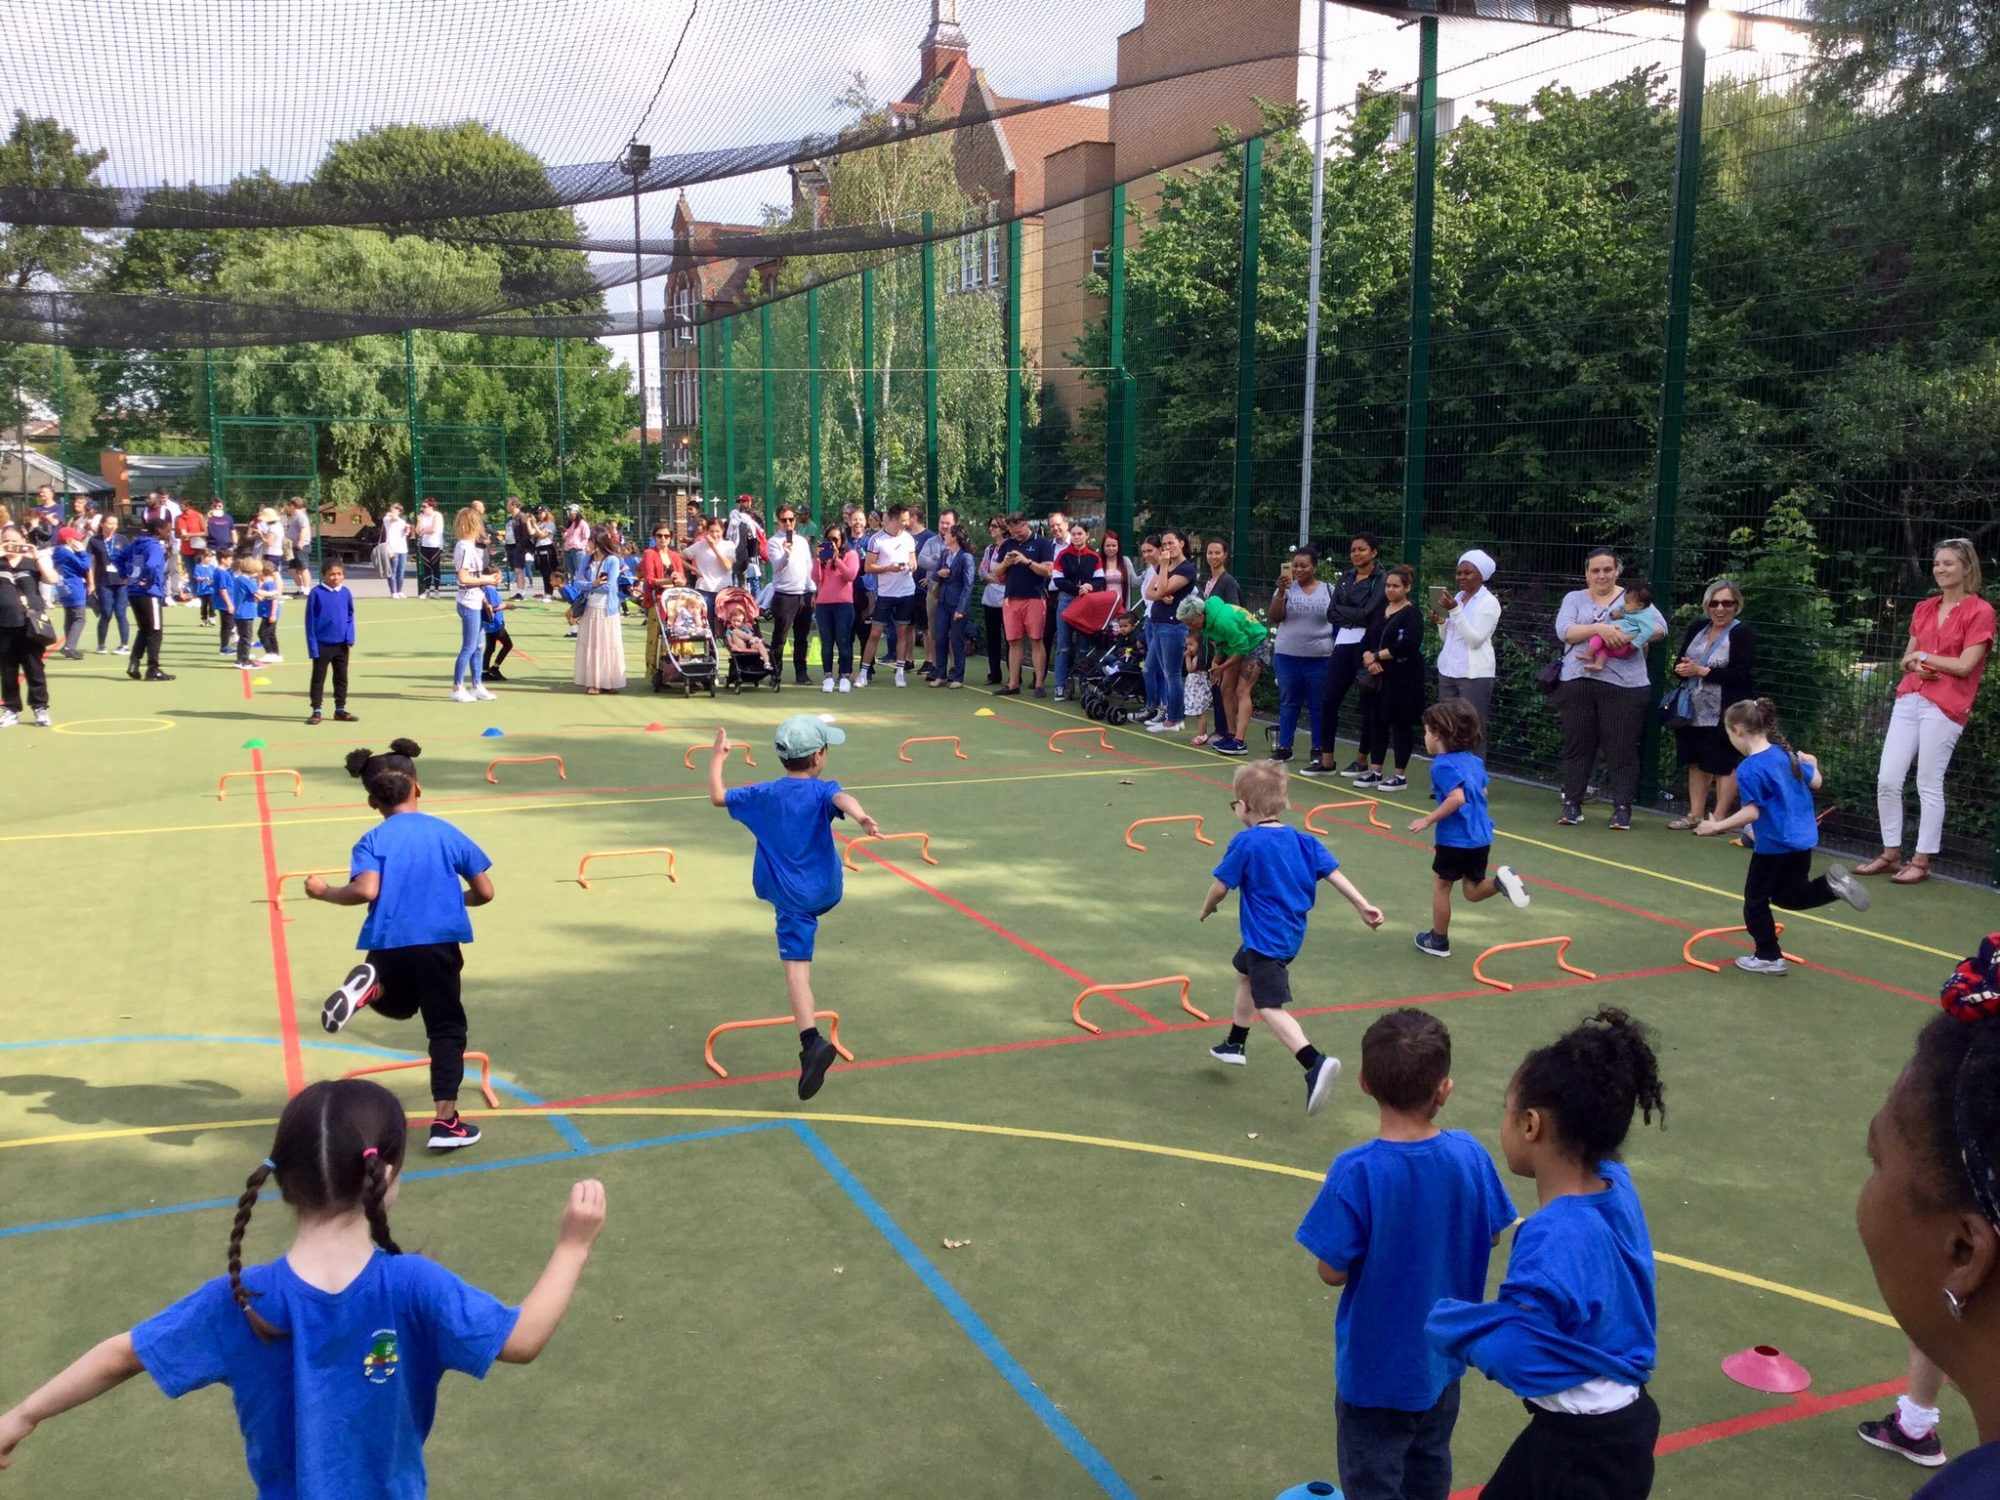 PTA-funded Astroturf in play…